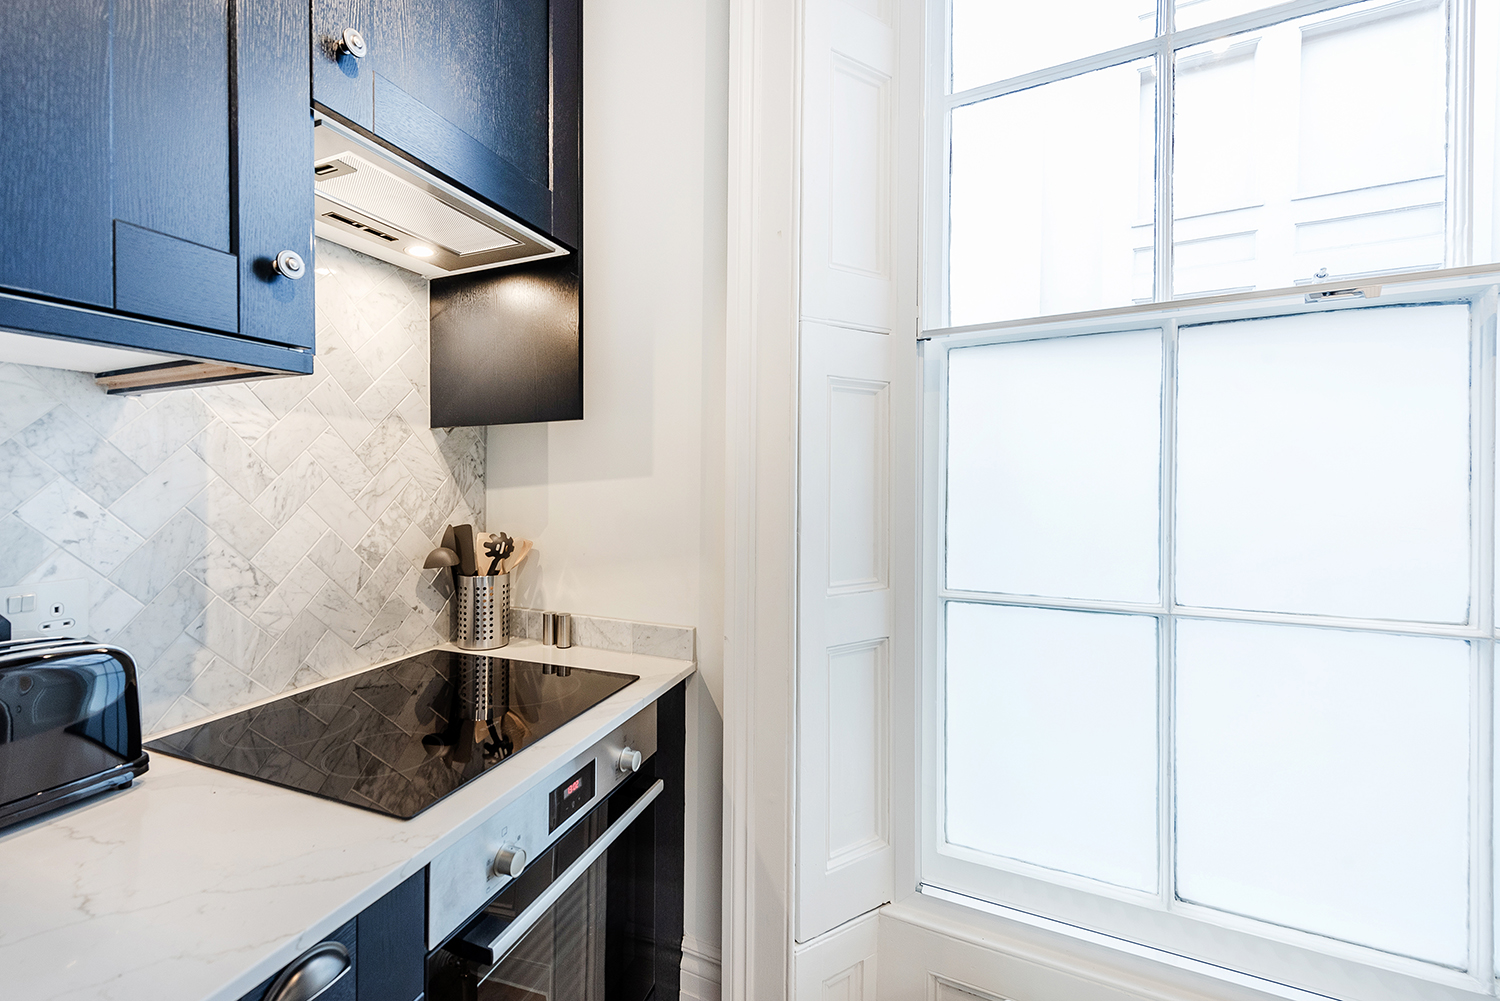 Kitchen at Short Gardens Apartment, Covent Garden, London - Citybase Apartments